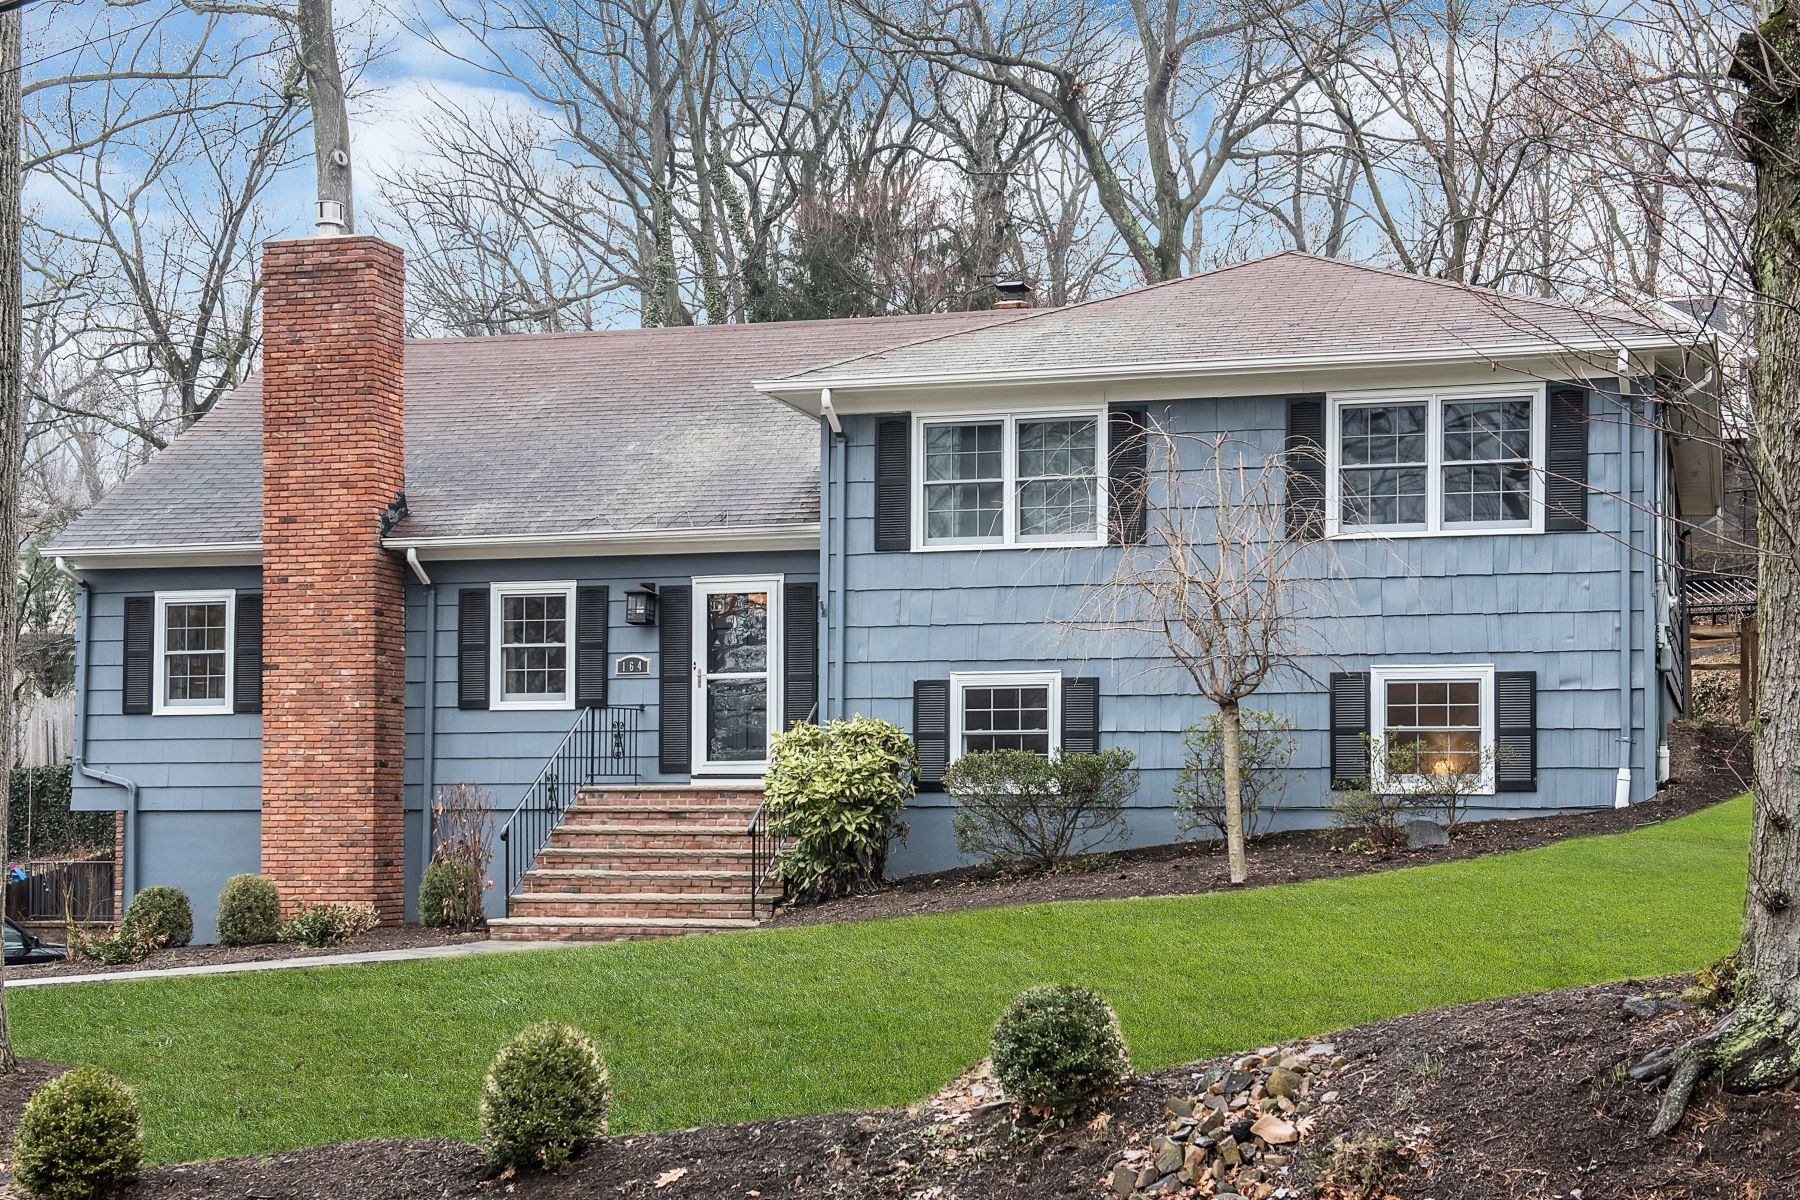 Single Family Home for Sale at Deceptively large home conveniently located to Midtown direct train station 164 Division Avenue Summit, New Jersey 07901 United States